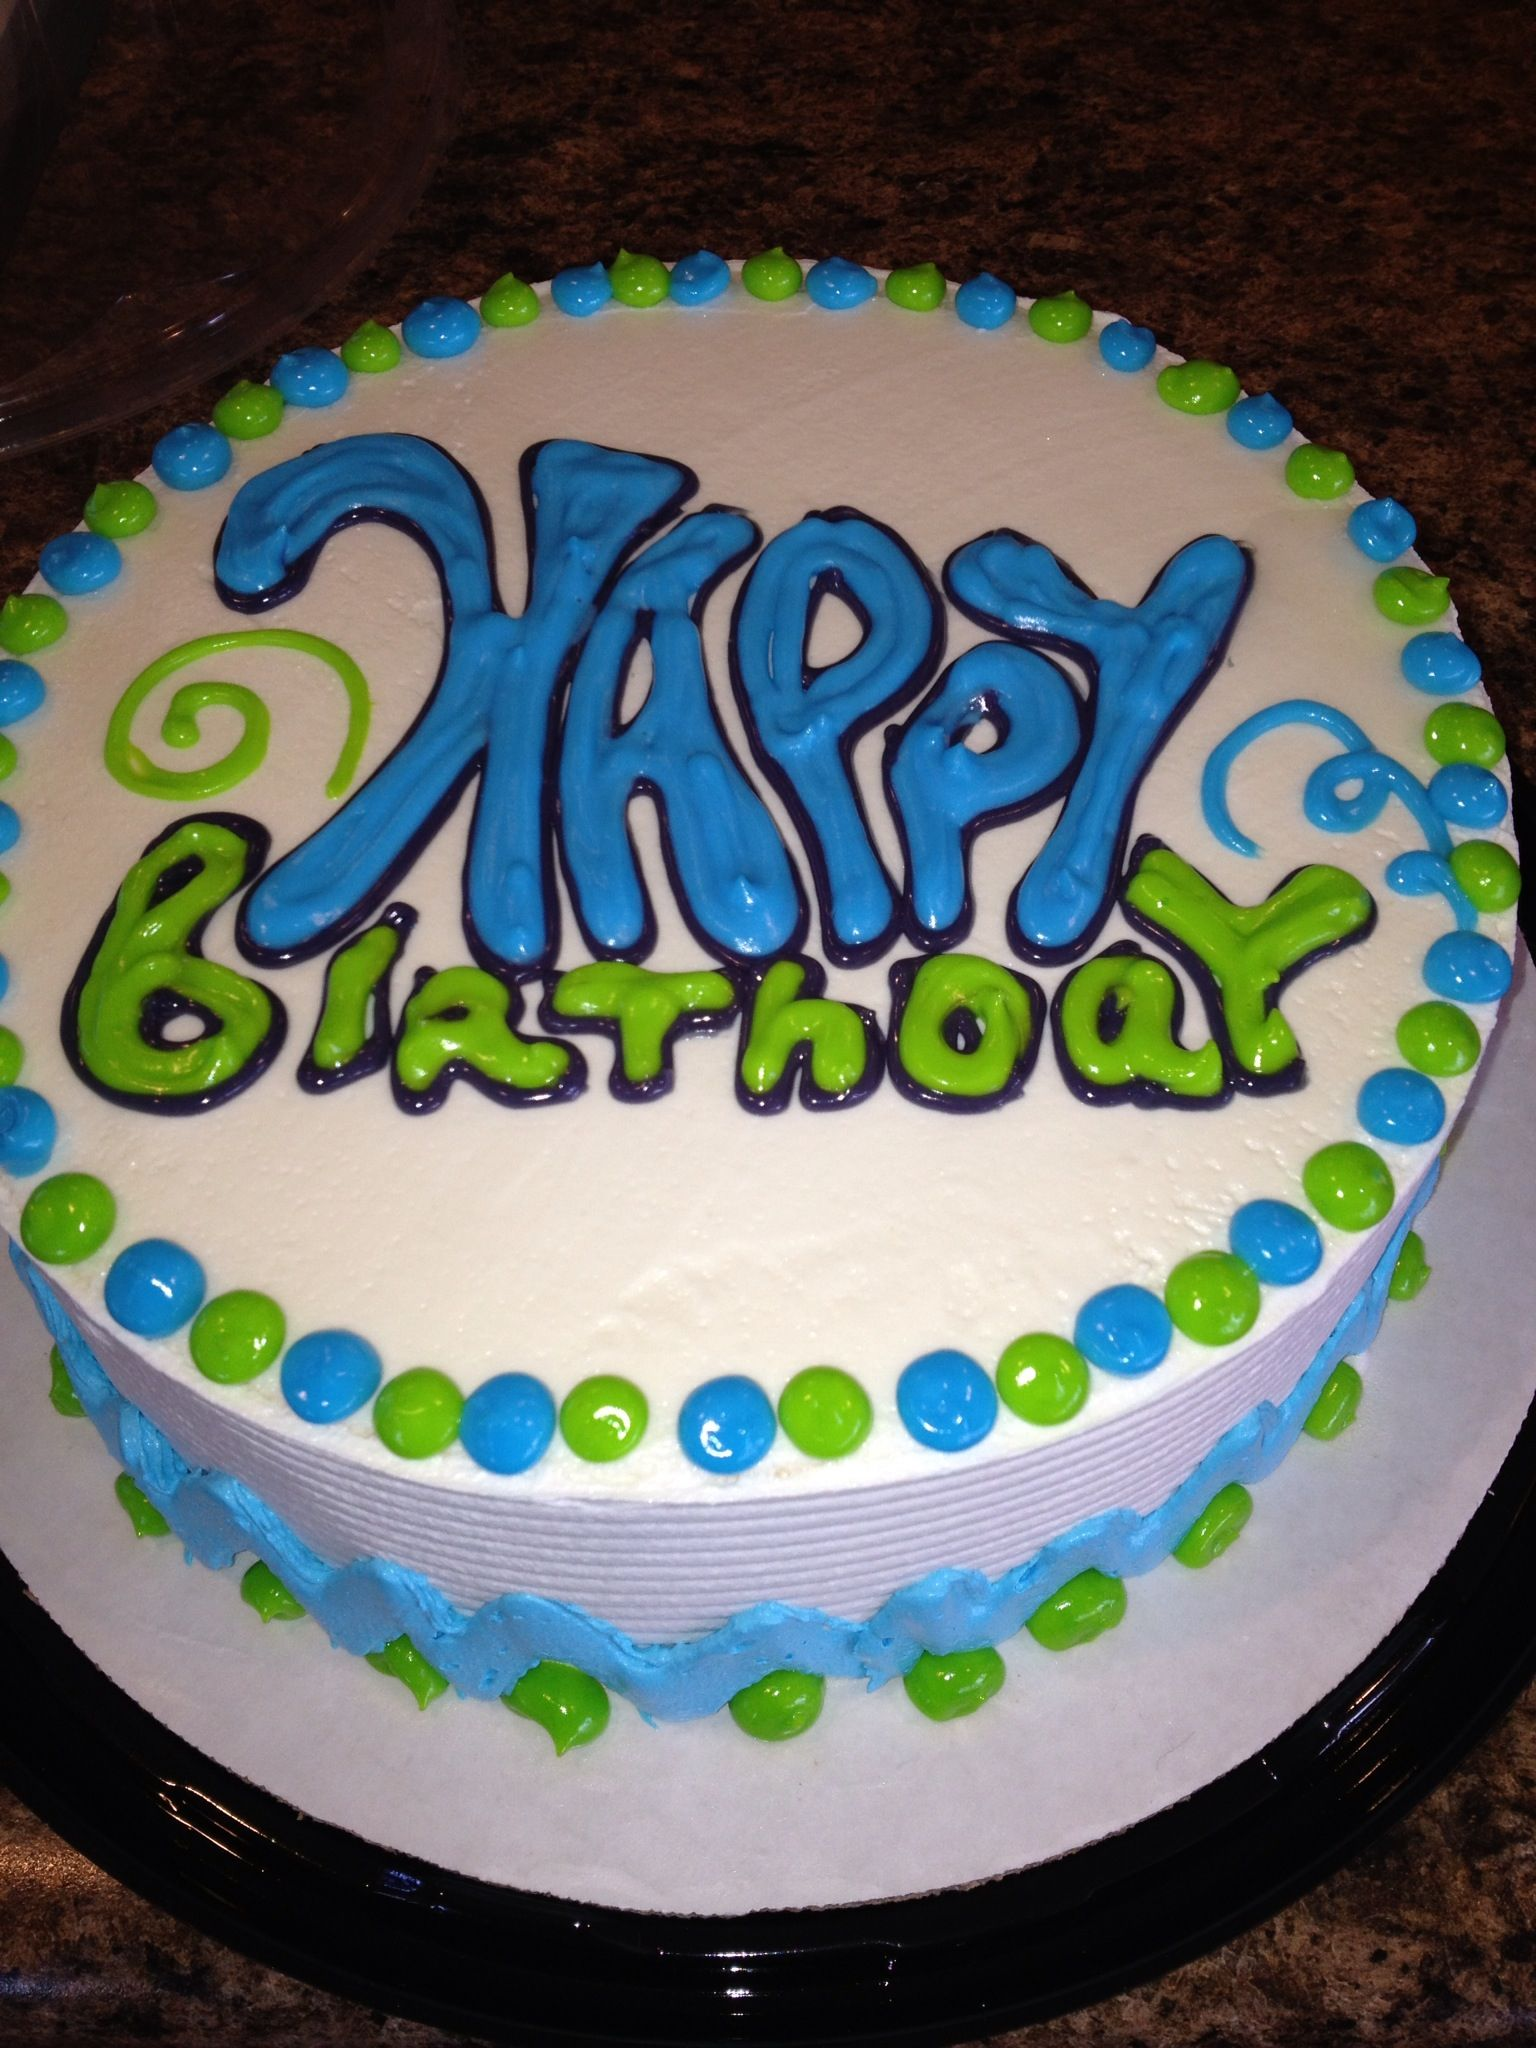 Dairy Queen Log Cake Designs : Dq cakes...Dairy Queen. Happy Birthday for anyone ...